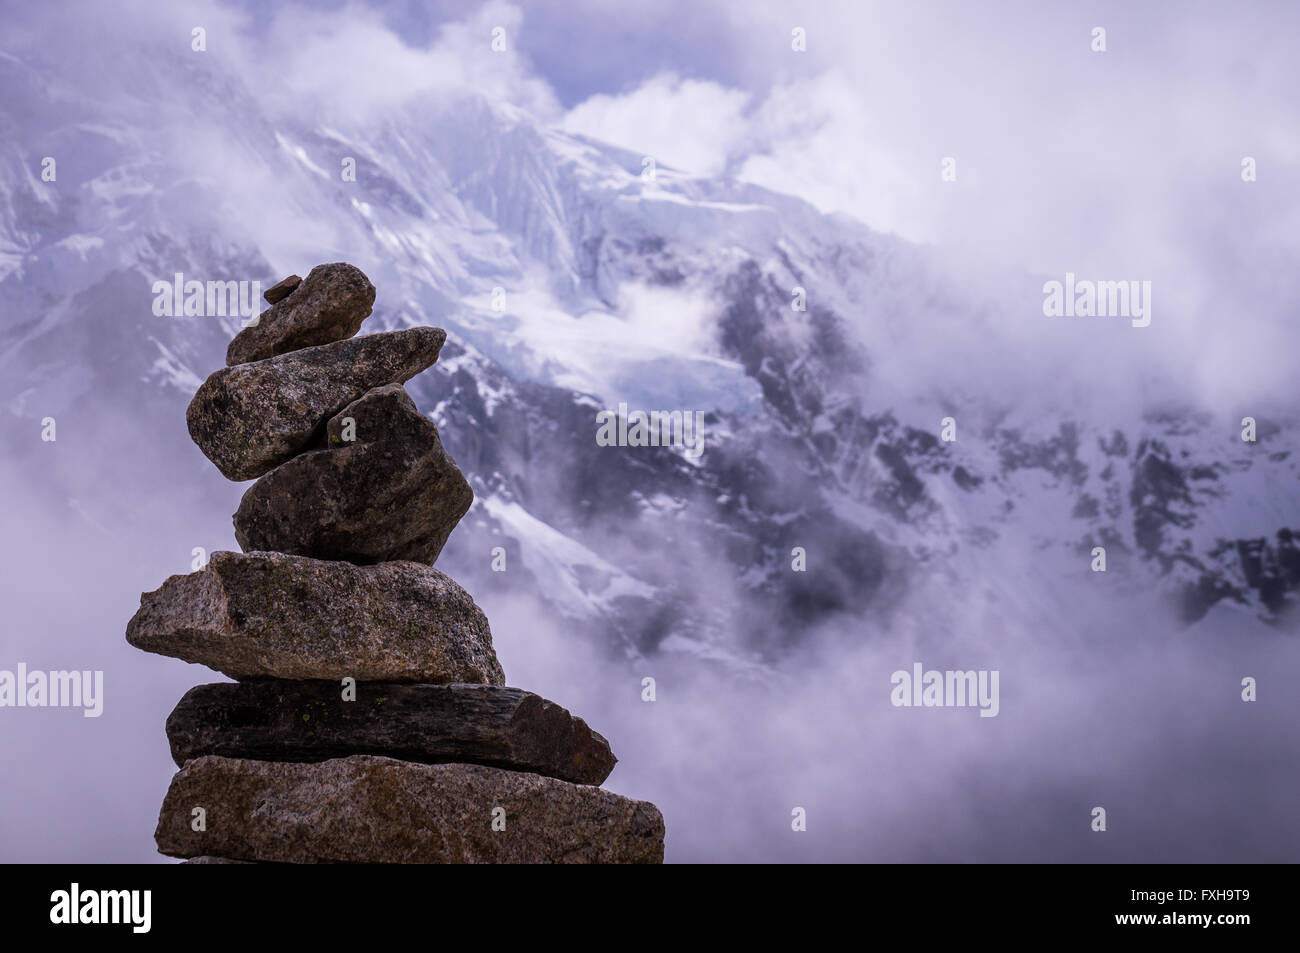 Mountain living near cusco peru royalty free stock photo - Cusco Peru In October 2015 A Stack Of Rocks In Front Of A Snow Topped Mountain Pile Of Rocks Are Often Used As Way Markers Fo